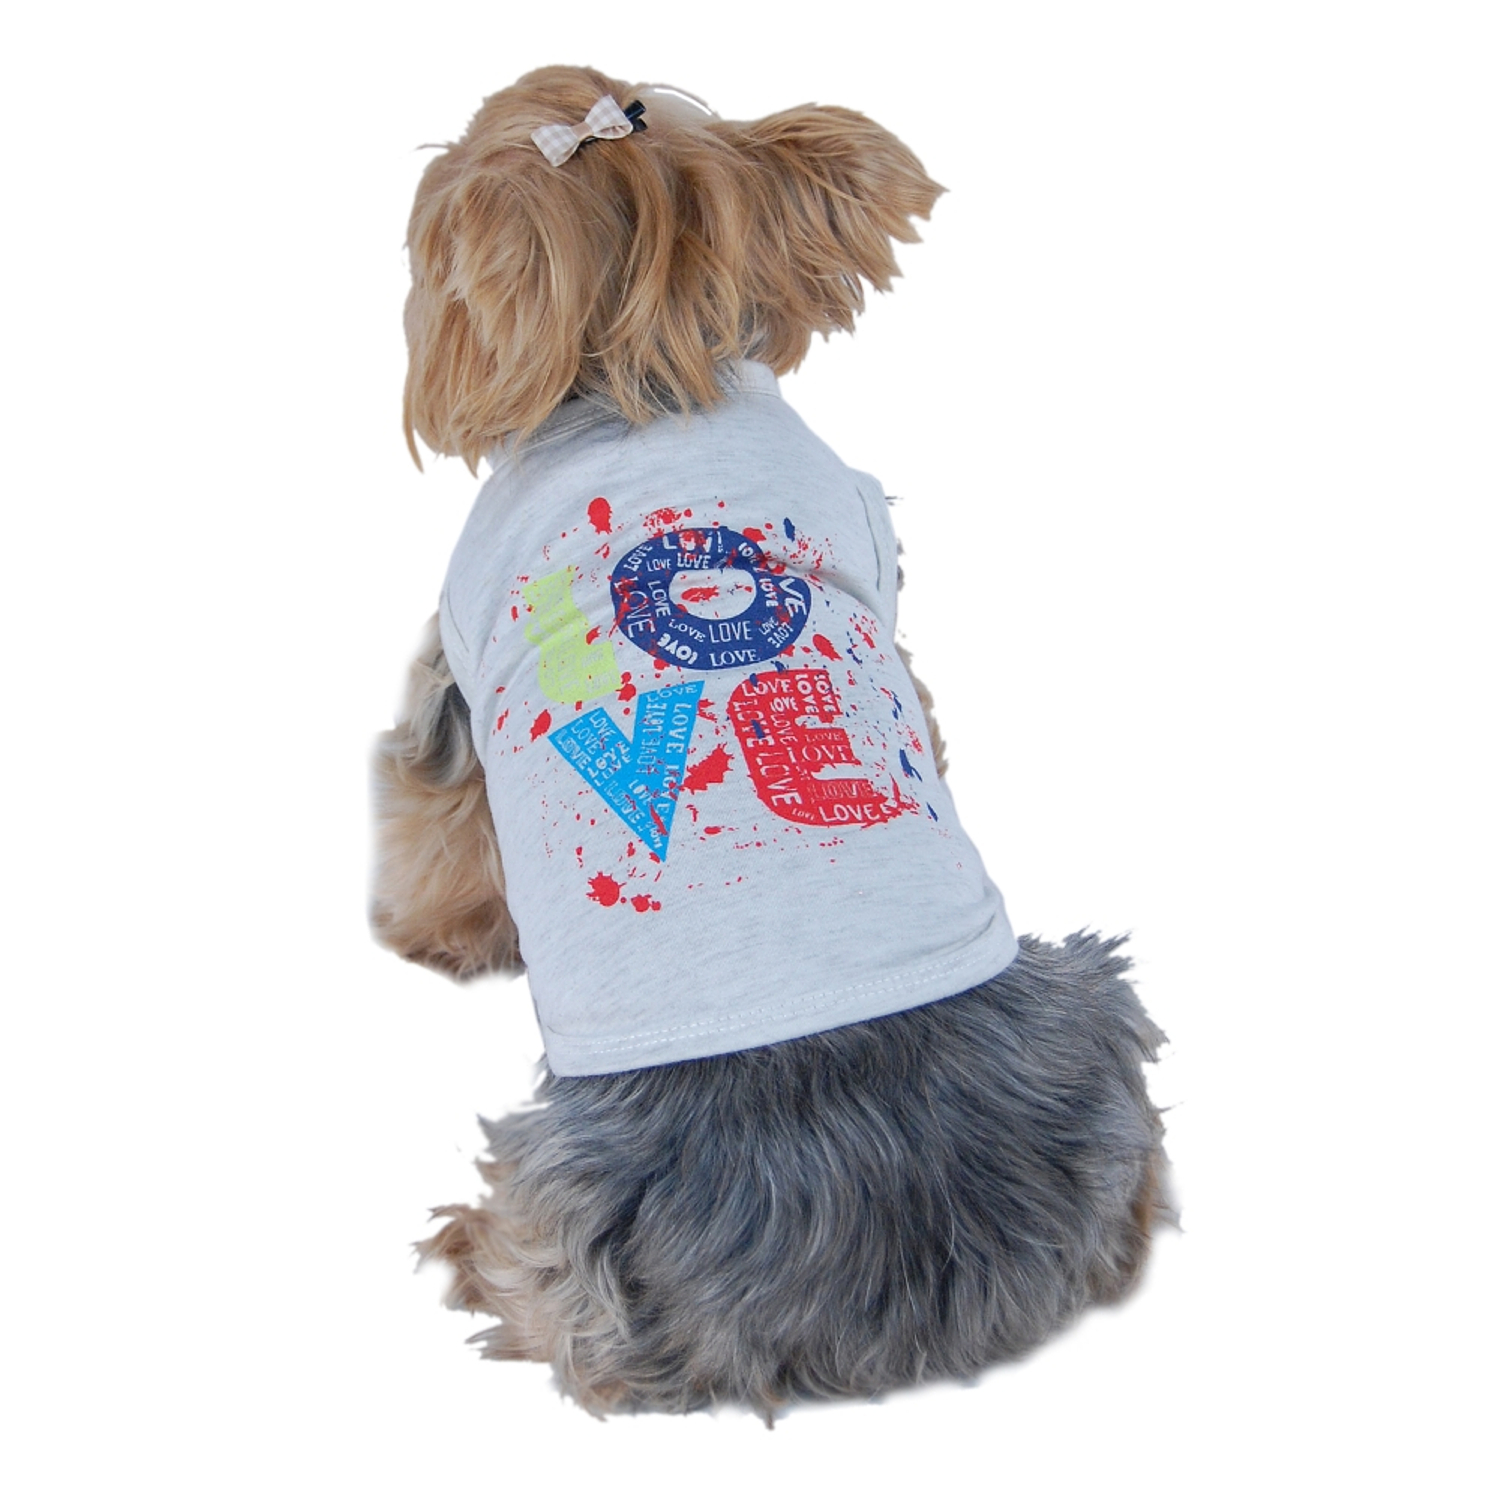 Gray Colorful Love Graffiti Soft Tee For Dog Clothing Clothes - Extra Small (Gift for Pet)